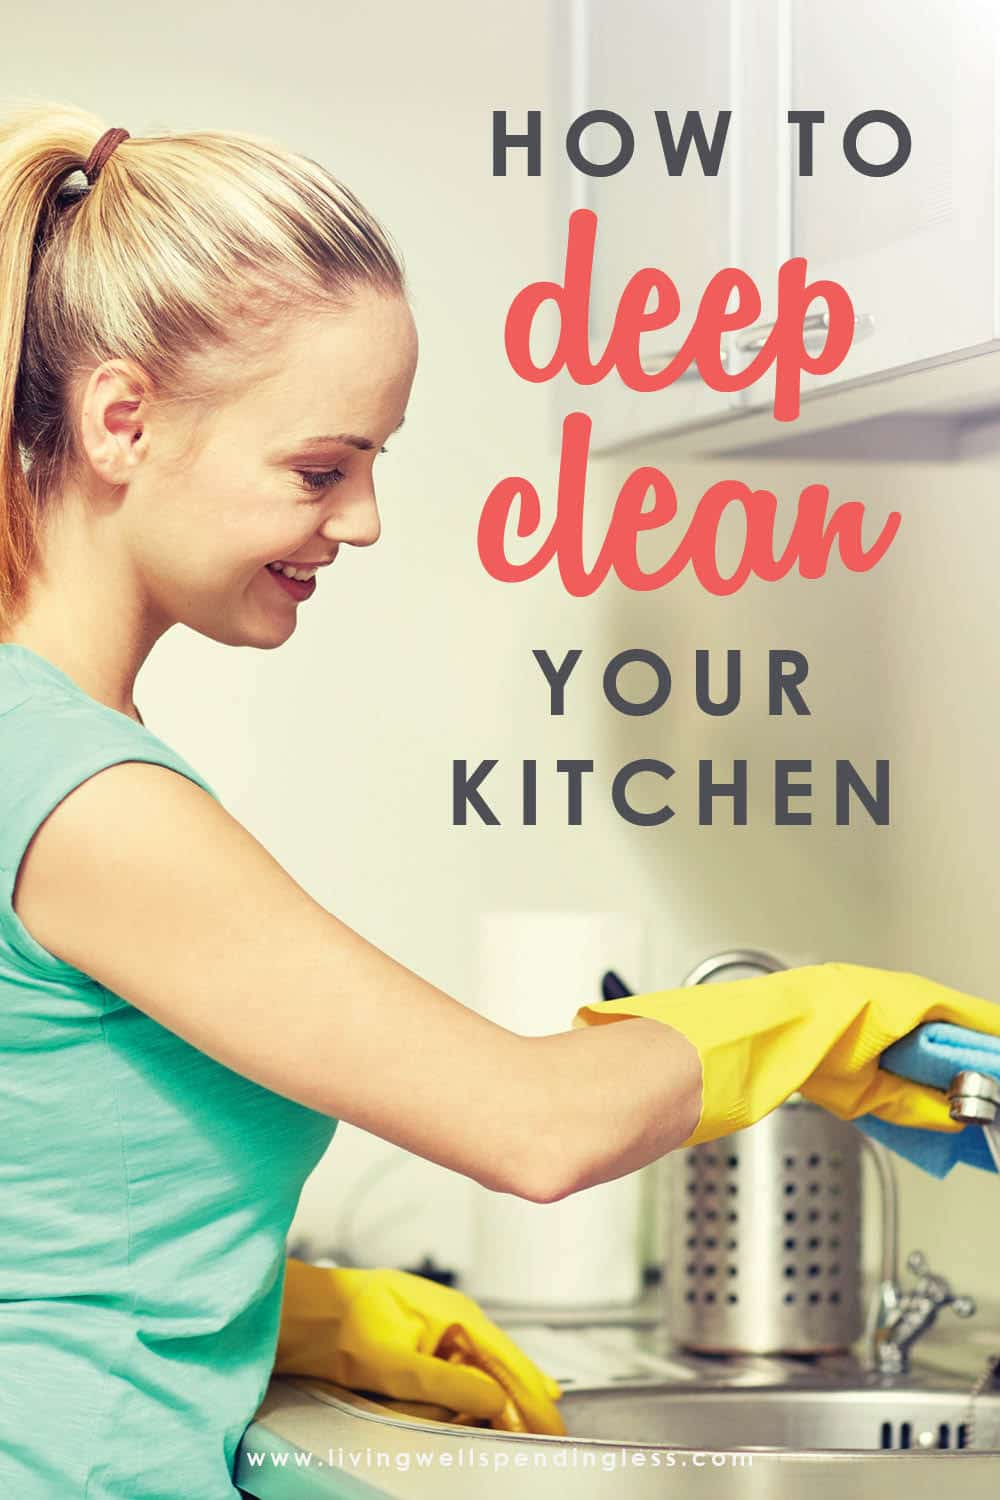 Here's how to deep clean your kitchen from top to bottom. Don't miss this step-by-step guide to get a kitchen that's sparkling clean and ready to enjoy. #deepcleankitchen #cleaning #springcleaning #kitchen